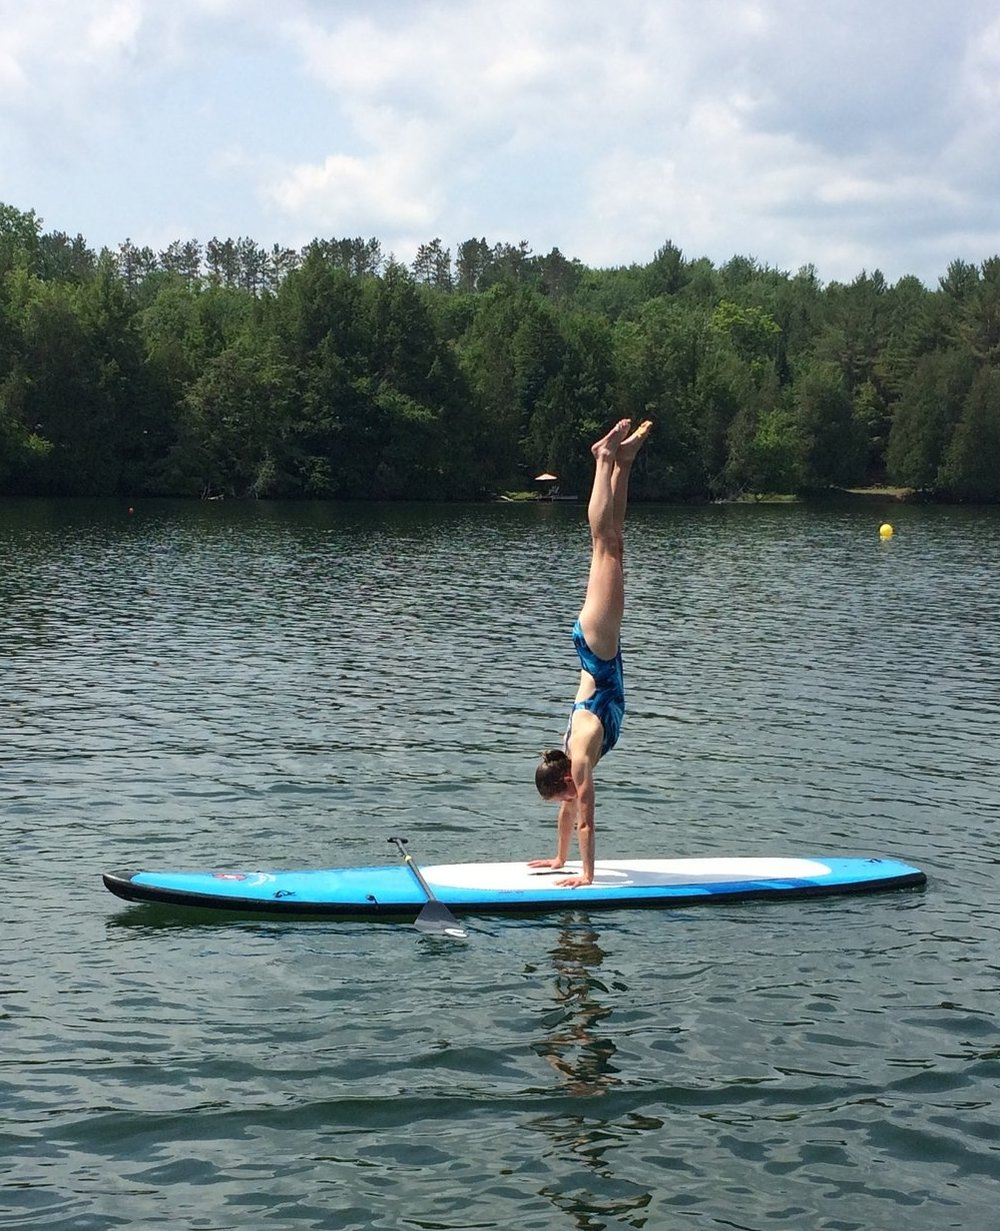 Paddle board handstands on the lake